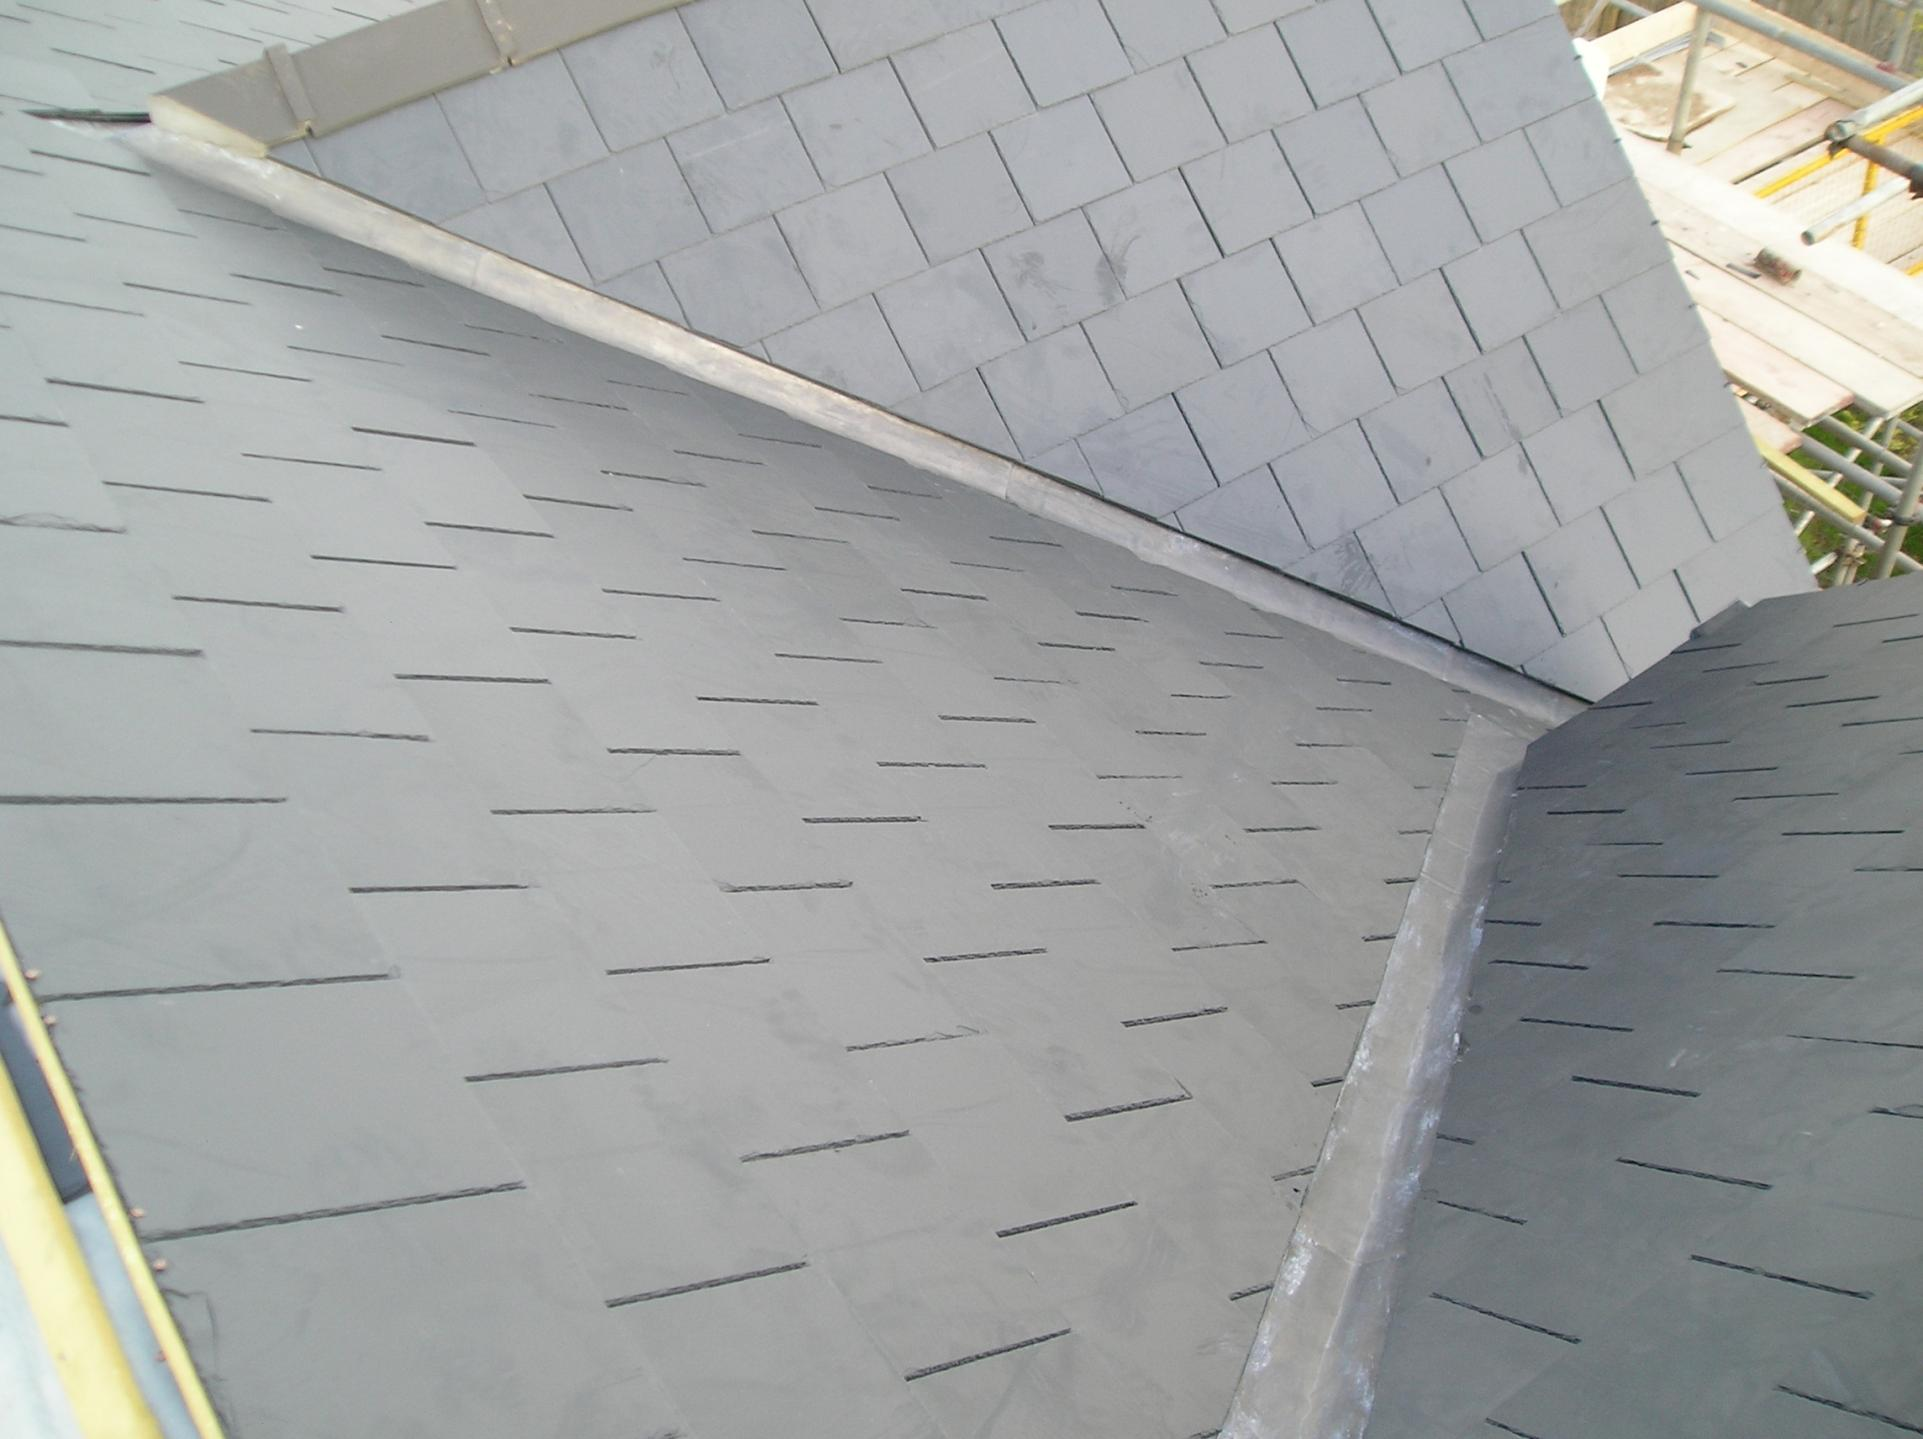 New Slate Roof Contractor Talk Professional Construction And Remodeling Forum